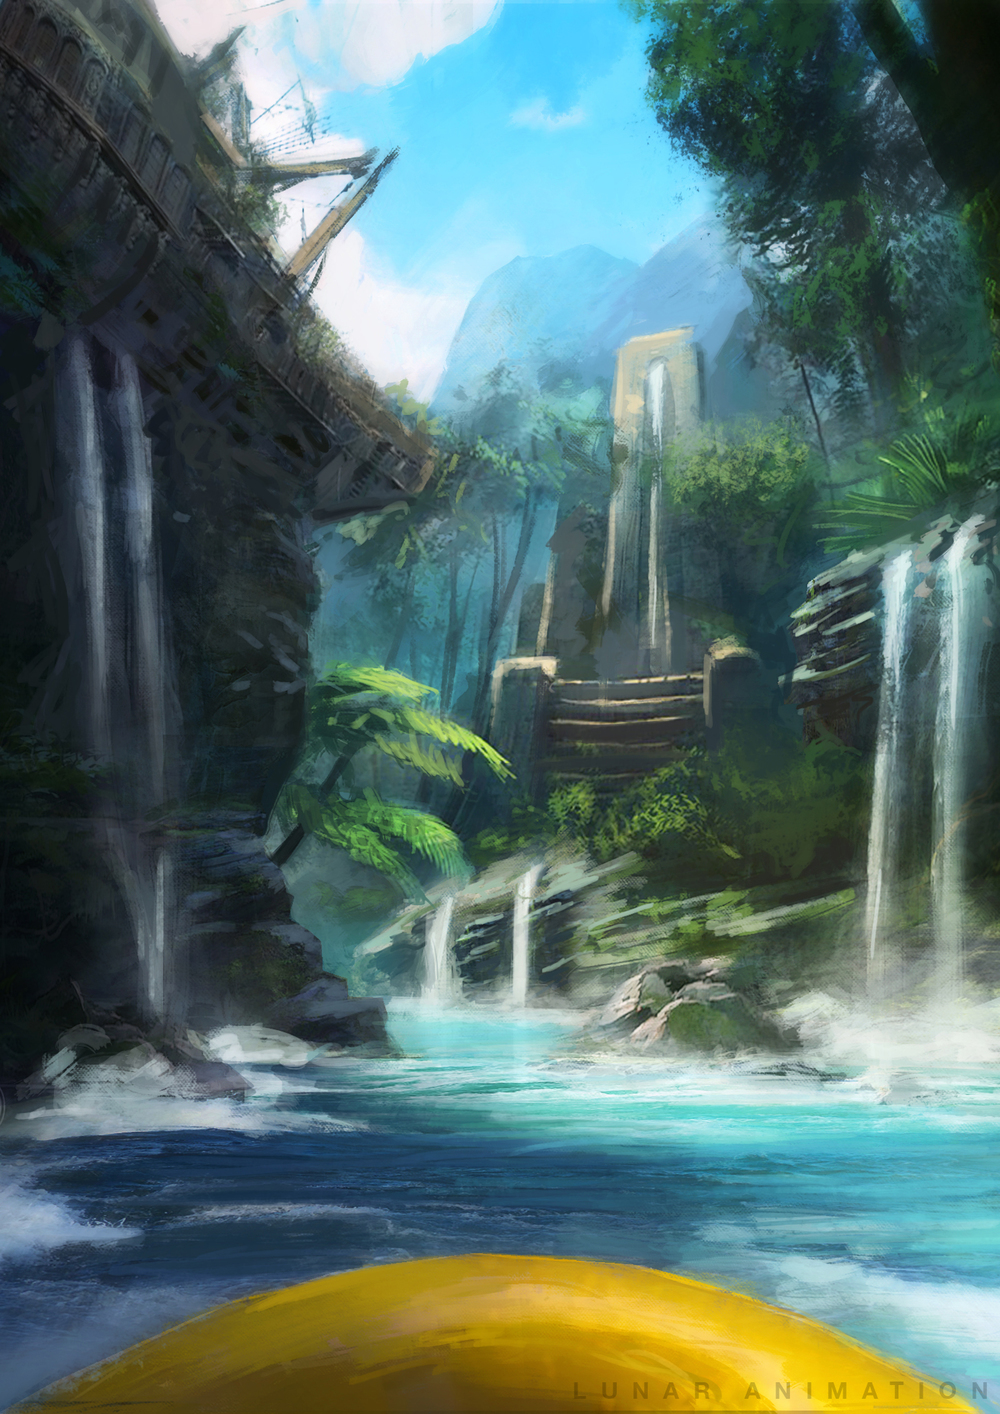 Splash Canyon Concept Art